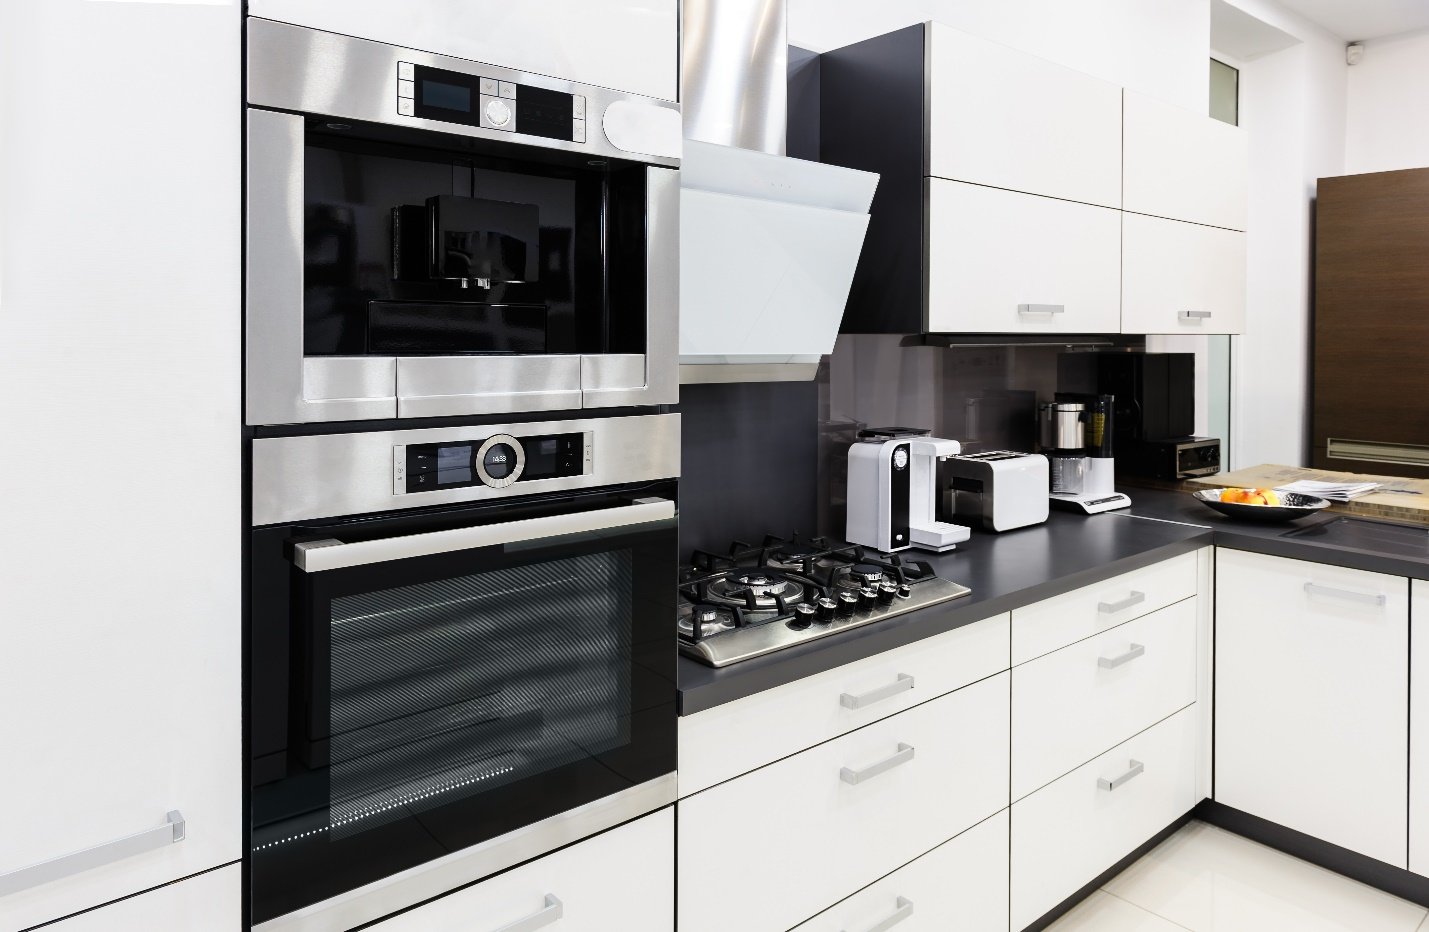 The 5 Essential Kitchen Appliances Everyone Should Own